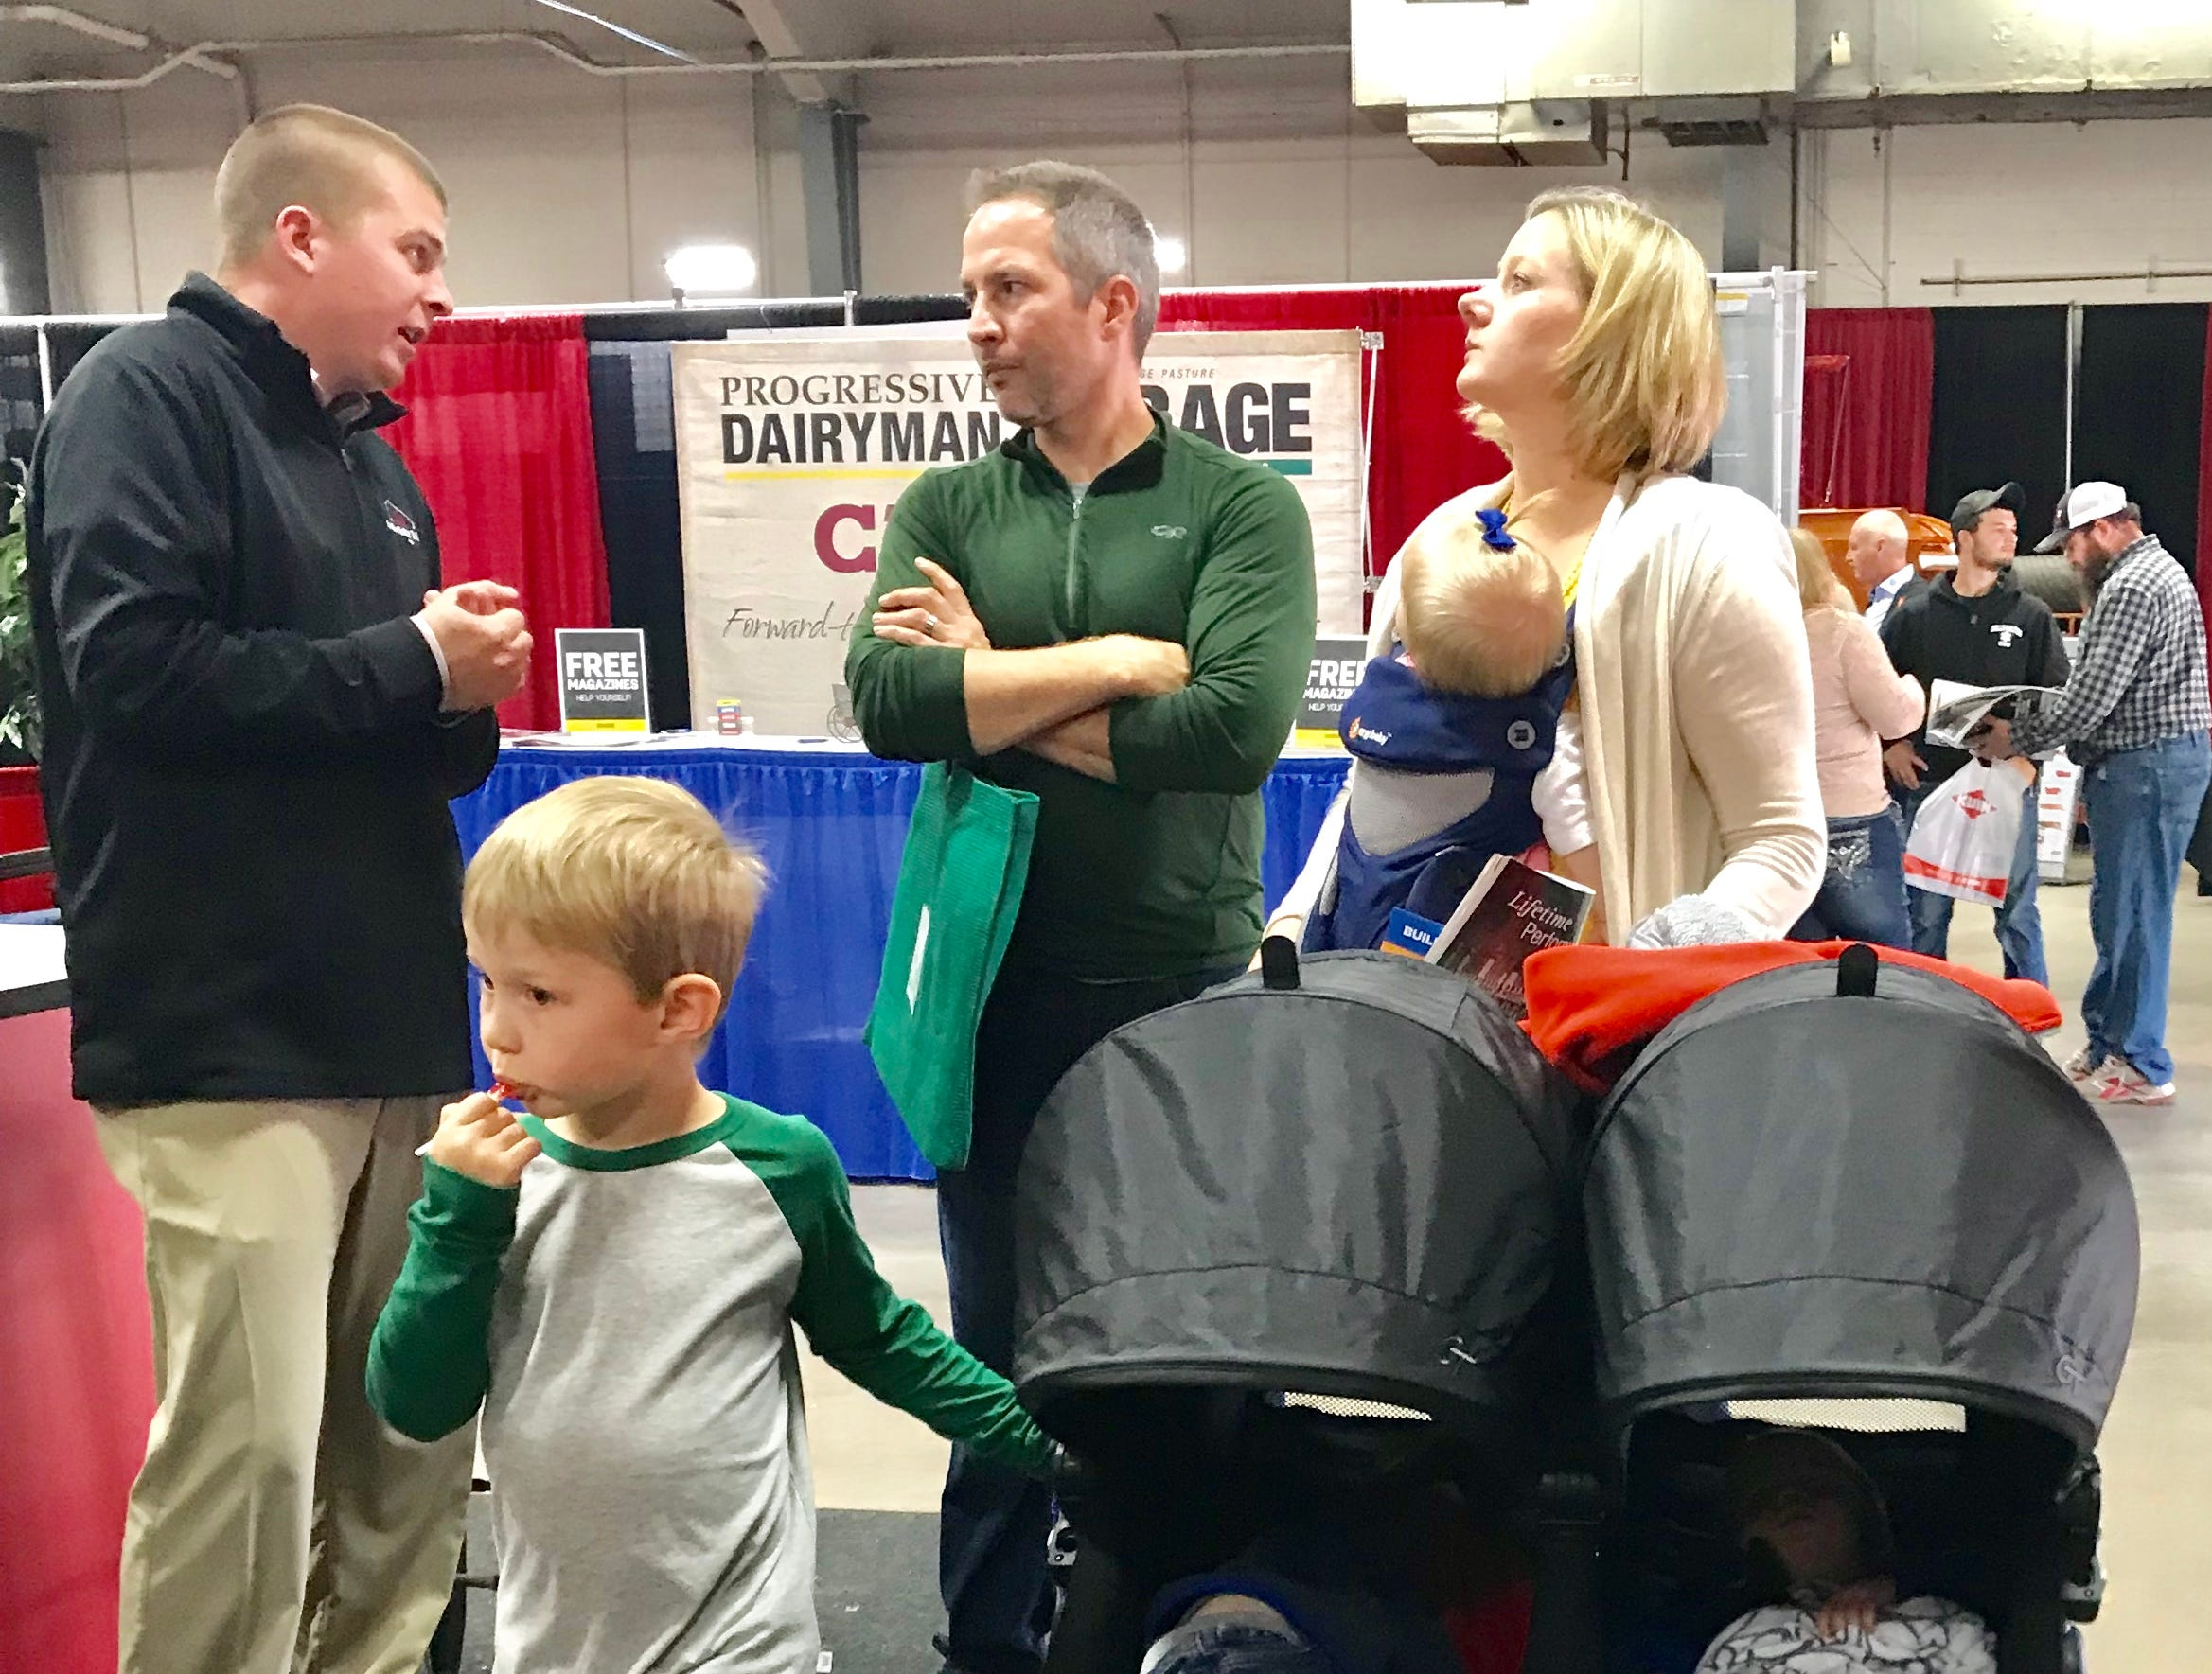 Three of their four children take a snooze while these parents talk shop with an exhibitor inside the arena.